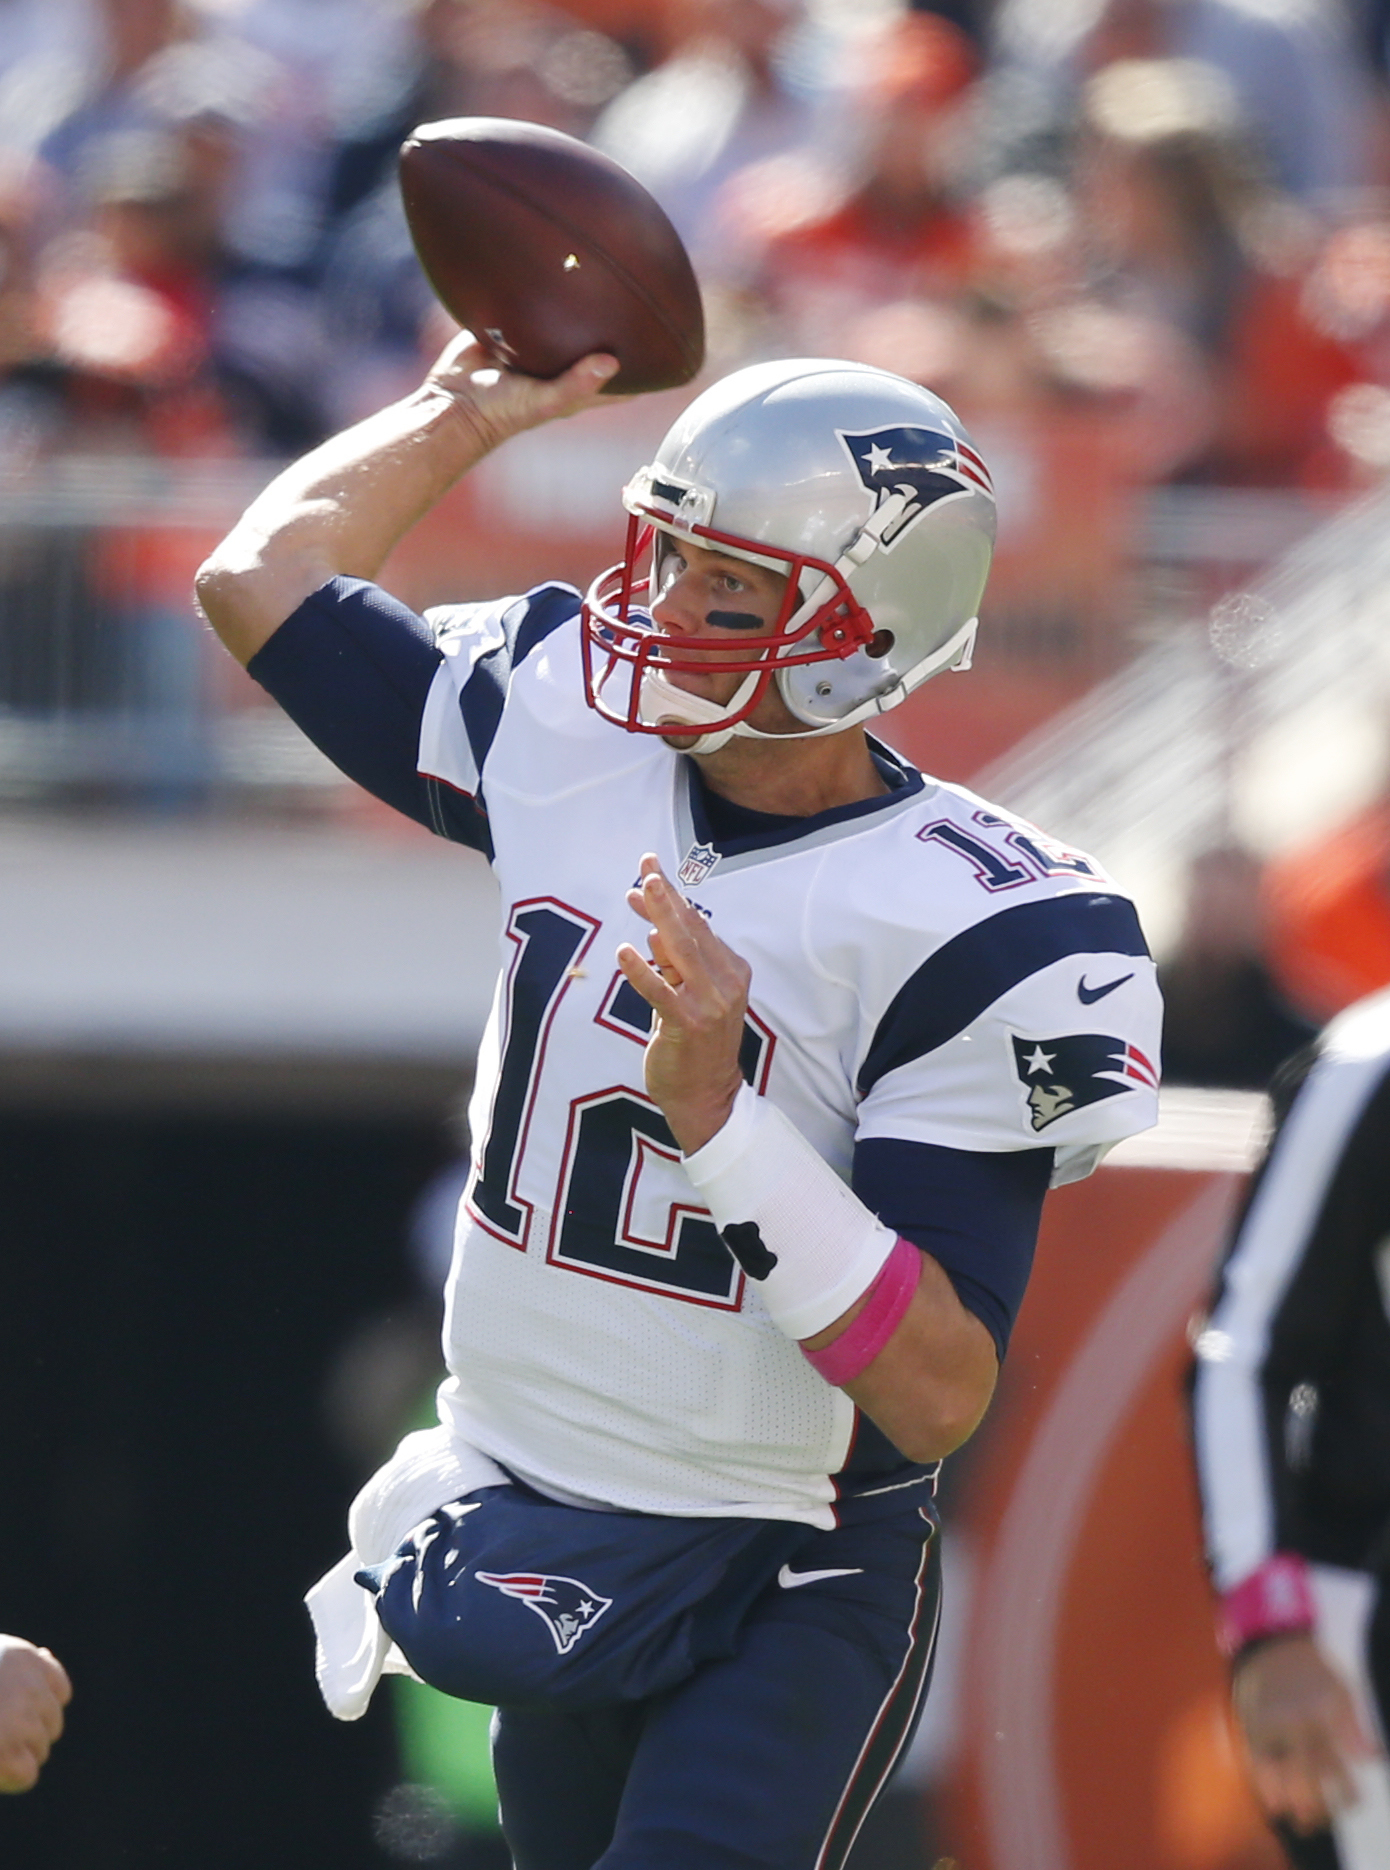 FILE - In this Oct. 9, 2016, file photo, New England Patriots' Tom Brady throws against the Cleveland Browns during the first half of an NFL football game in Cleveland. In three wins, Brady is 76 of 101 for 1,004 yards with eight touchdowns, no intercepti